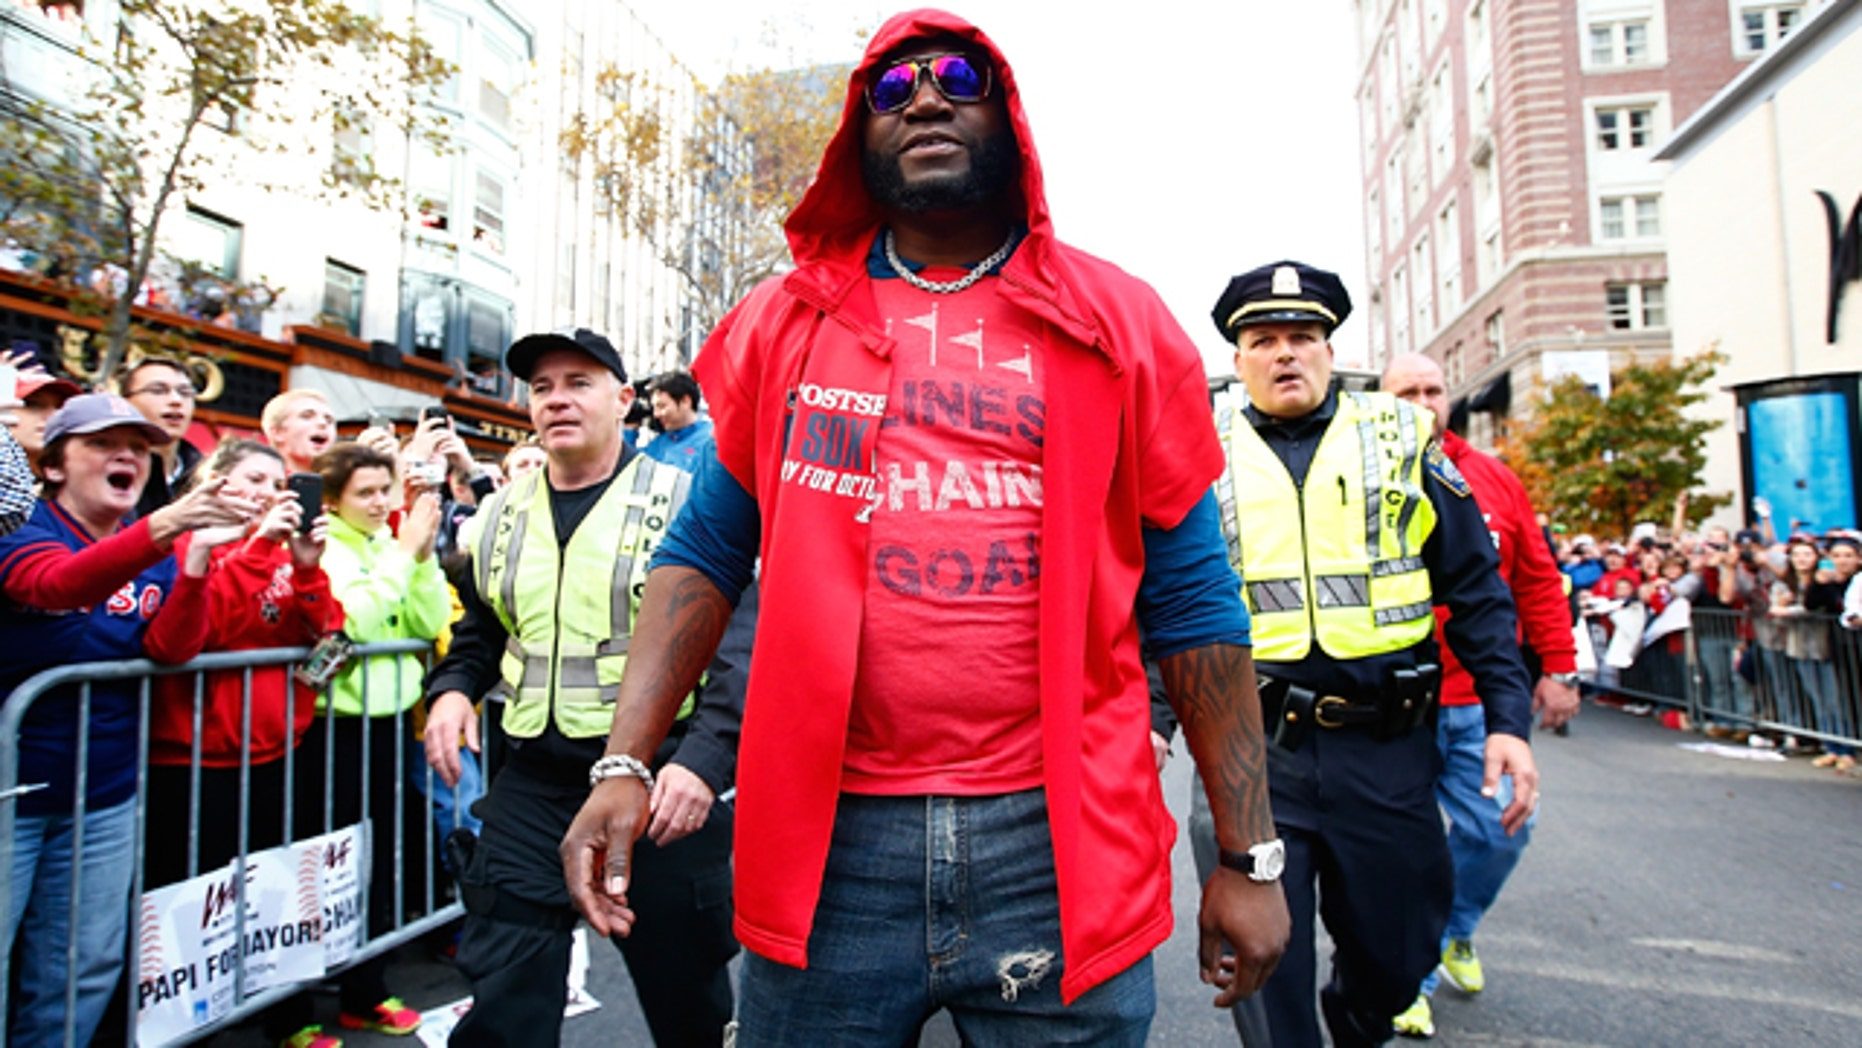 BOSTON, MA - NOVEMBER 02: David Ortiz #34 of the Boston Red Sox walks down Boylston Street near the finish line of the Boston Marathon during the World Series victory parade on November 2, 2013 in Boston, Massachusetts.  (Photo by Jared Wickerham/Getty Images)